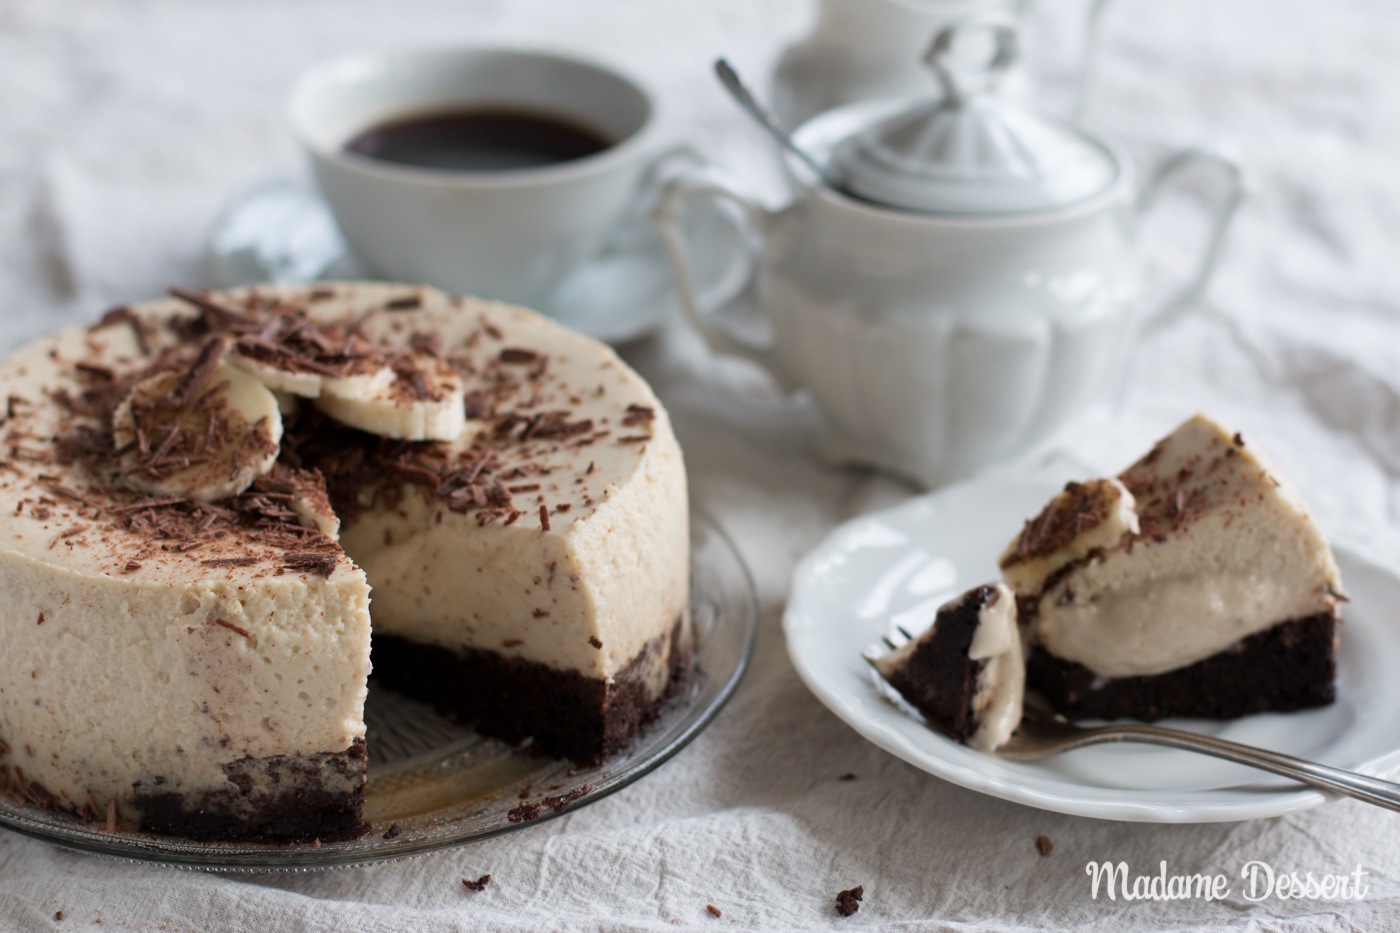 Banana Chocolate Cheesecake | Madame Dessert